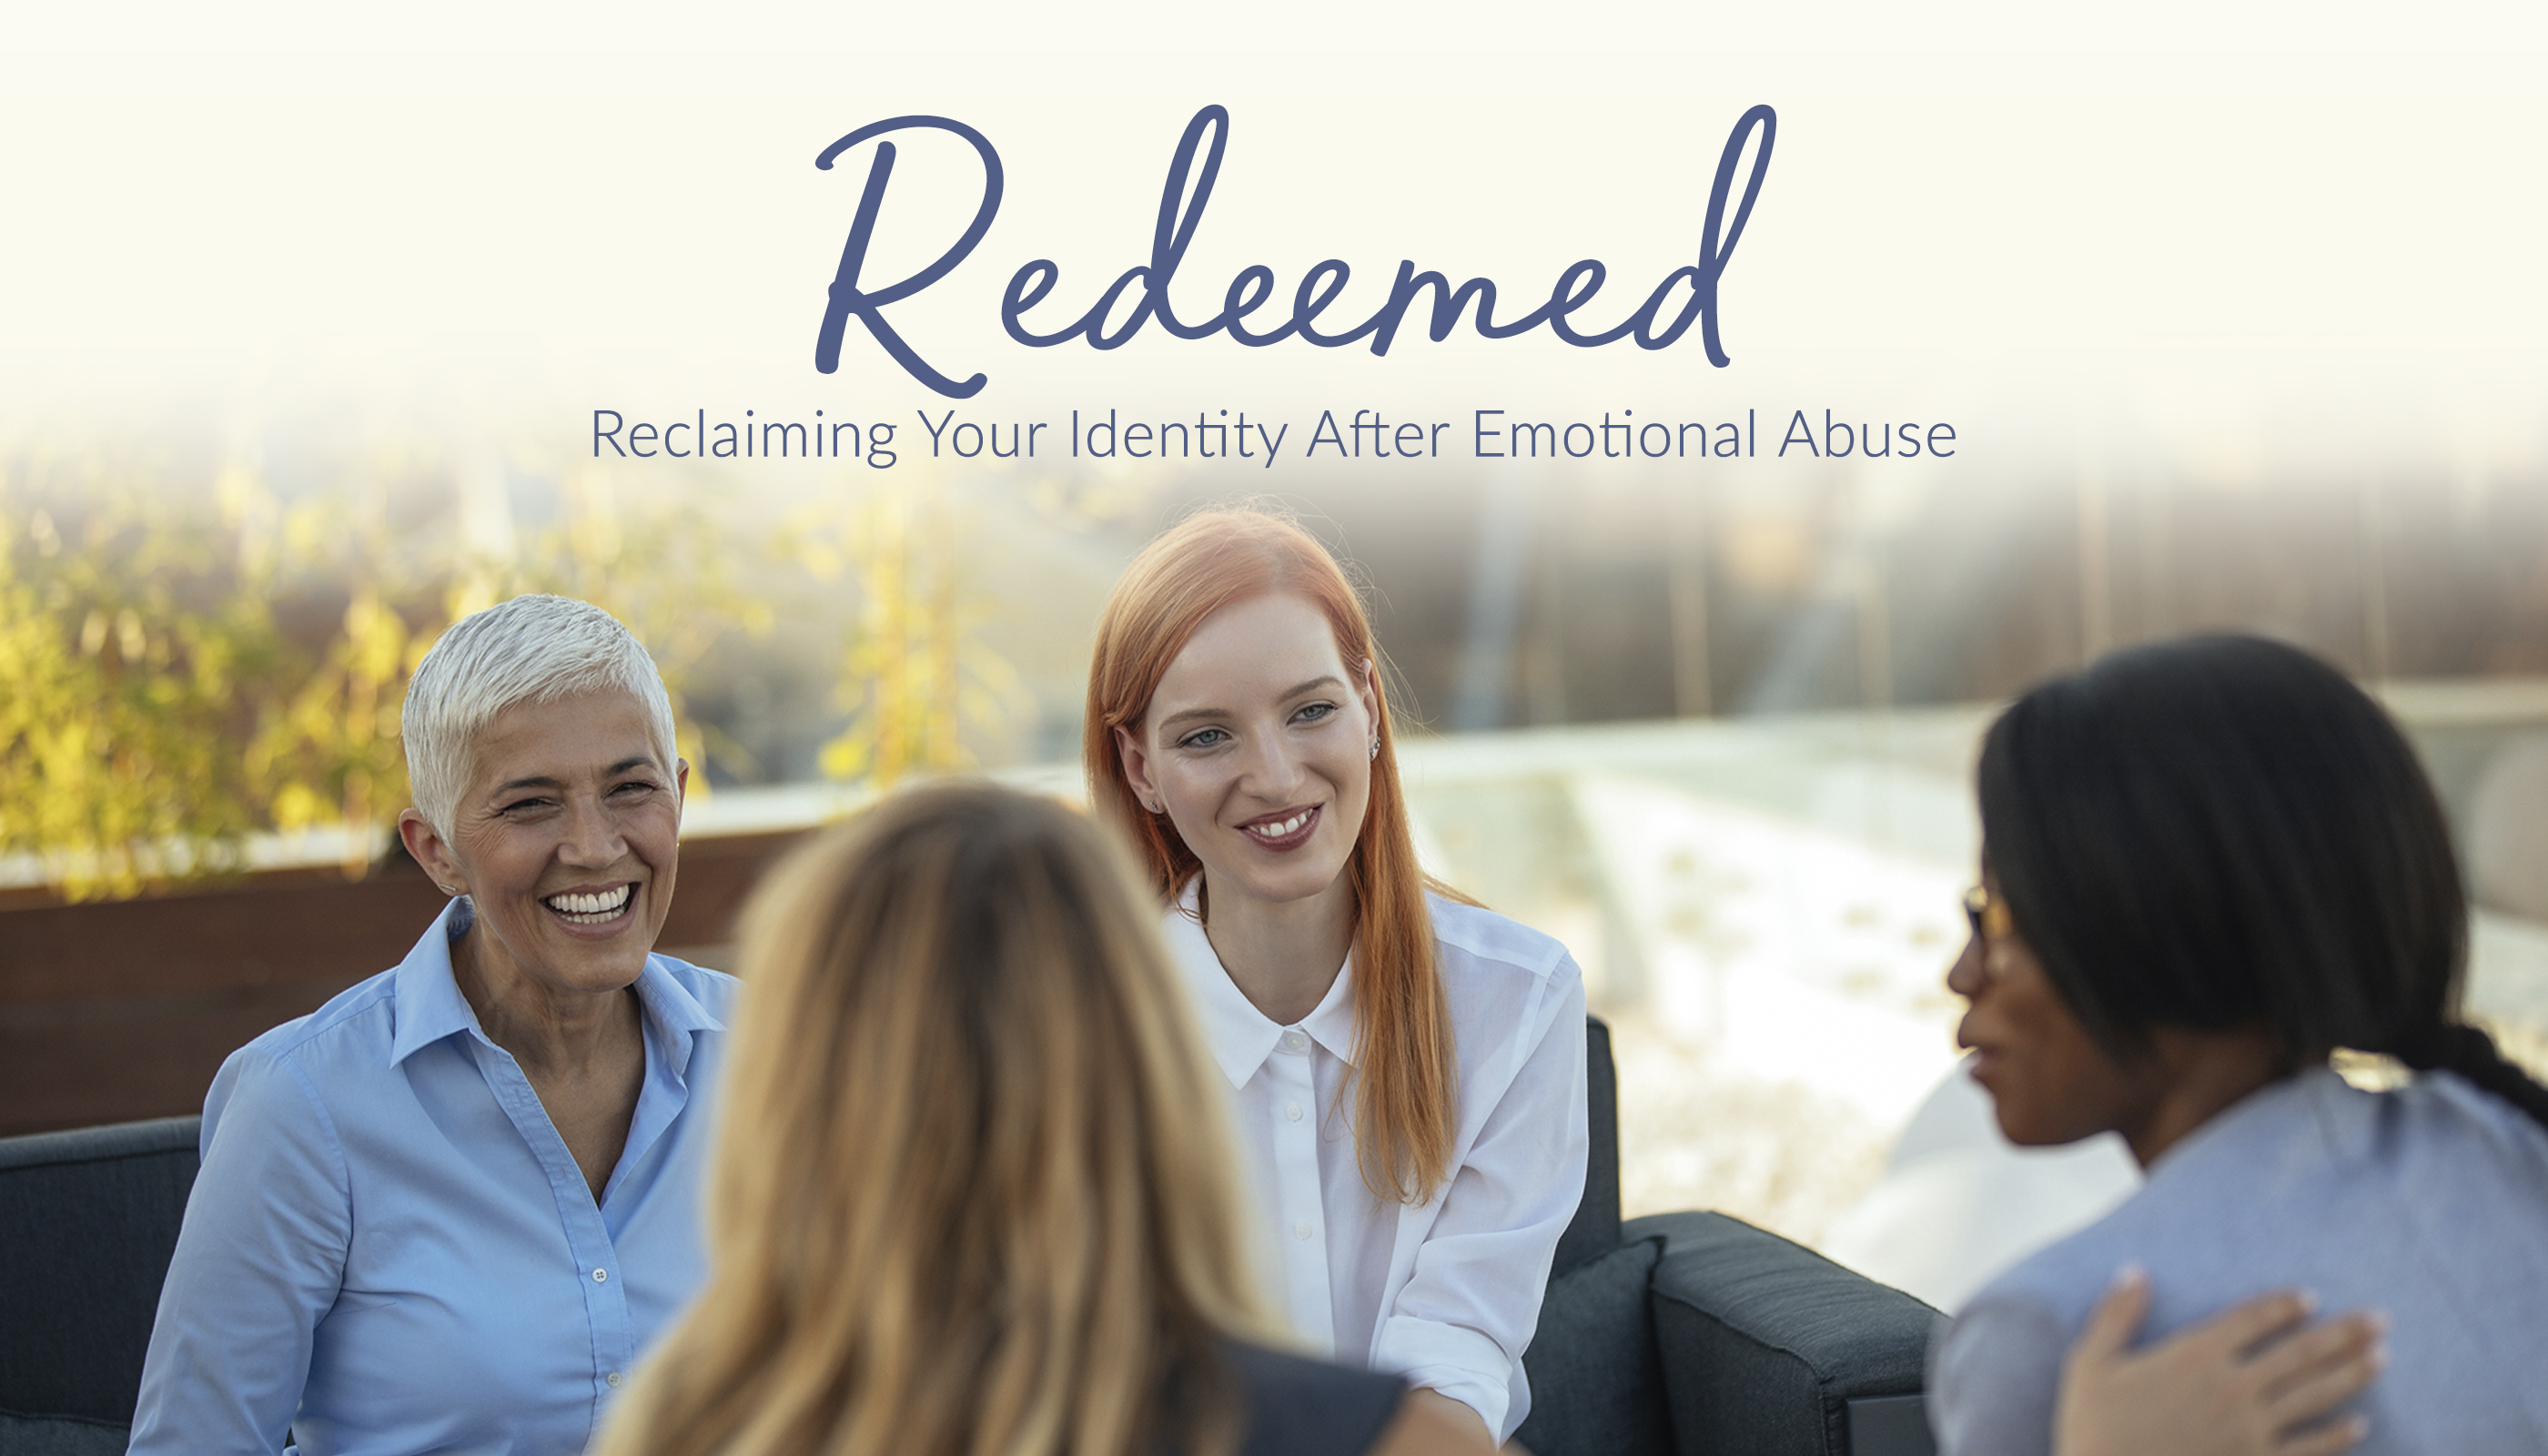 https://marriagerecoverycenter.com/wp-content/uploads/2019/05/Redeemed-Event-Page-Header.jpg